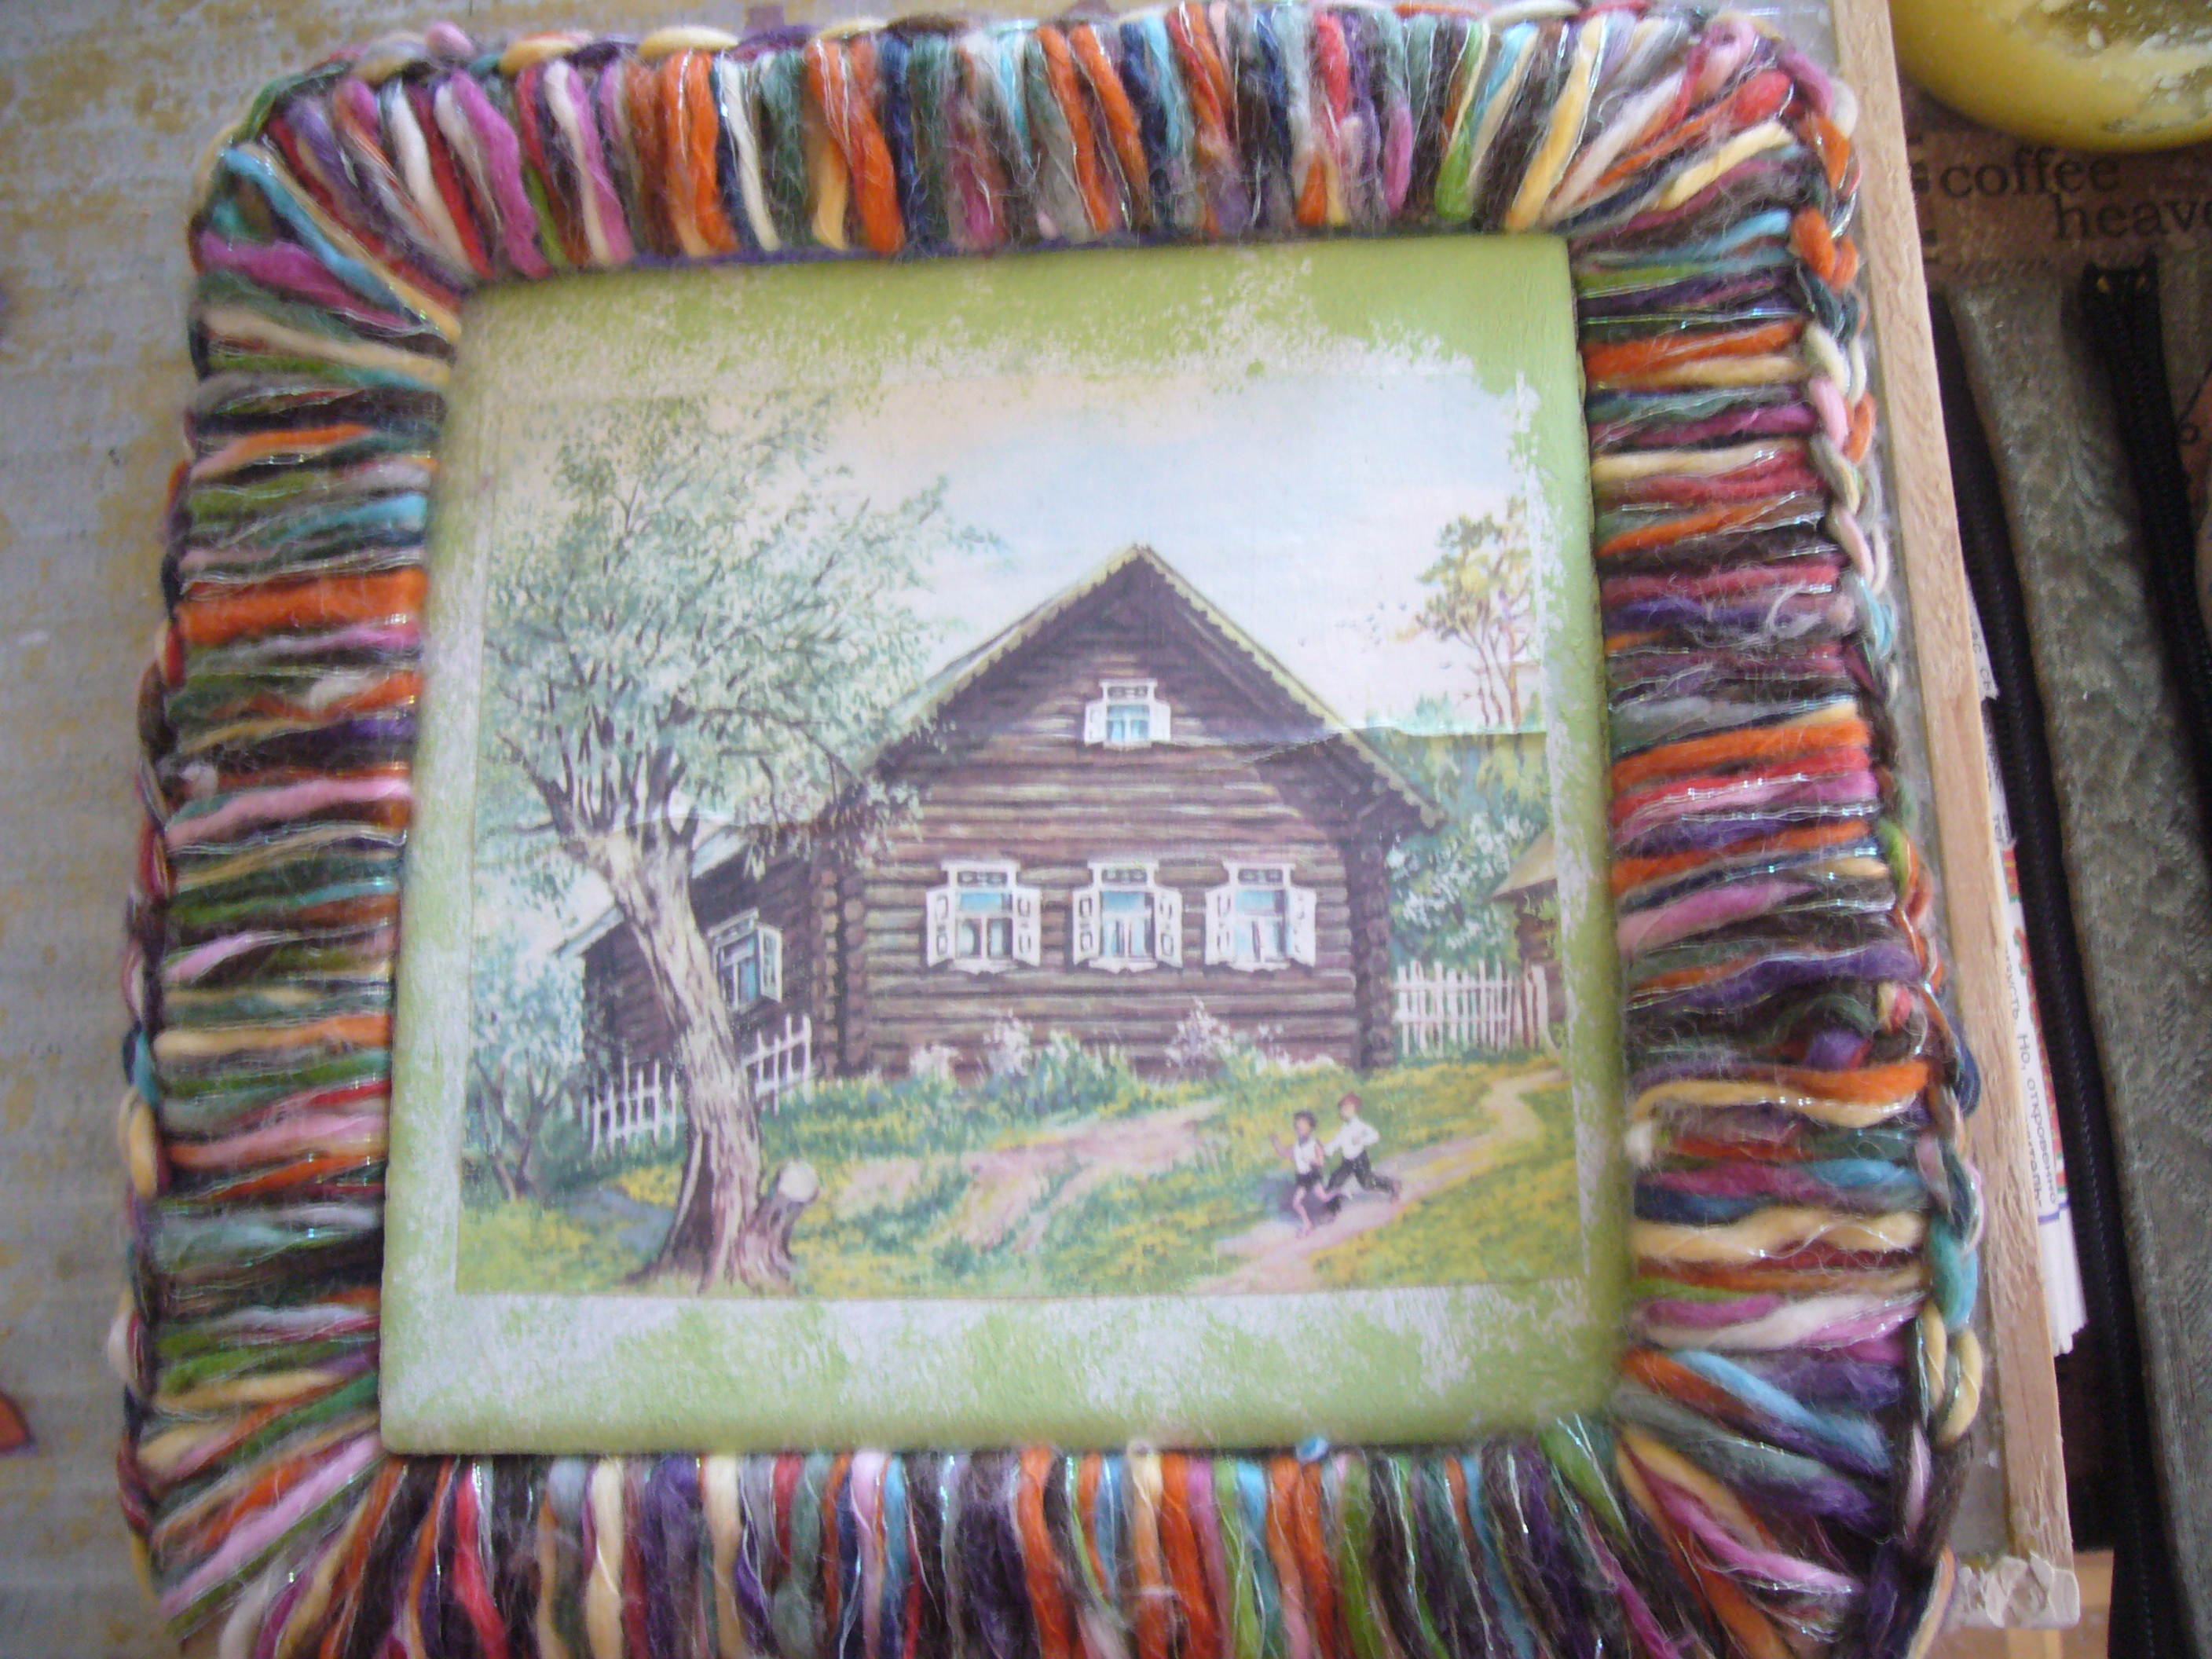 Decoupage plus crocheting = upcycled picture and frame   DIY crafts ...